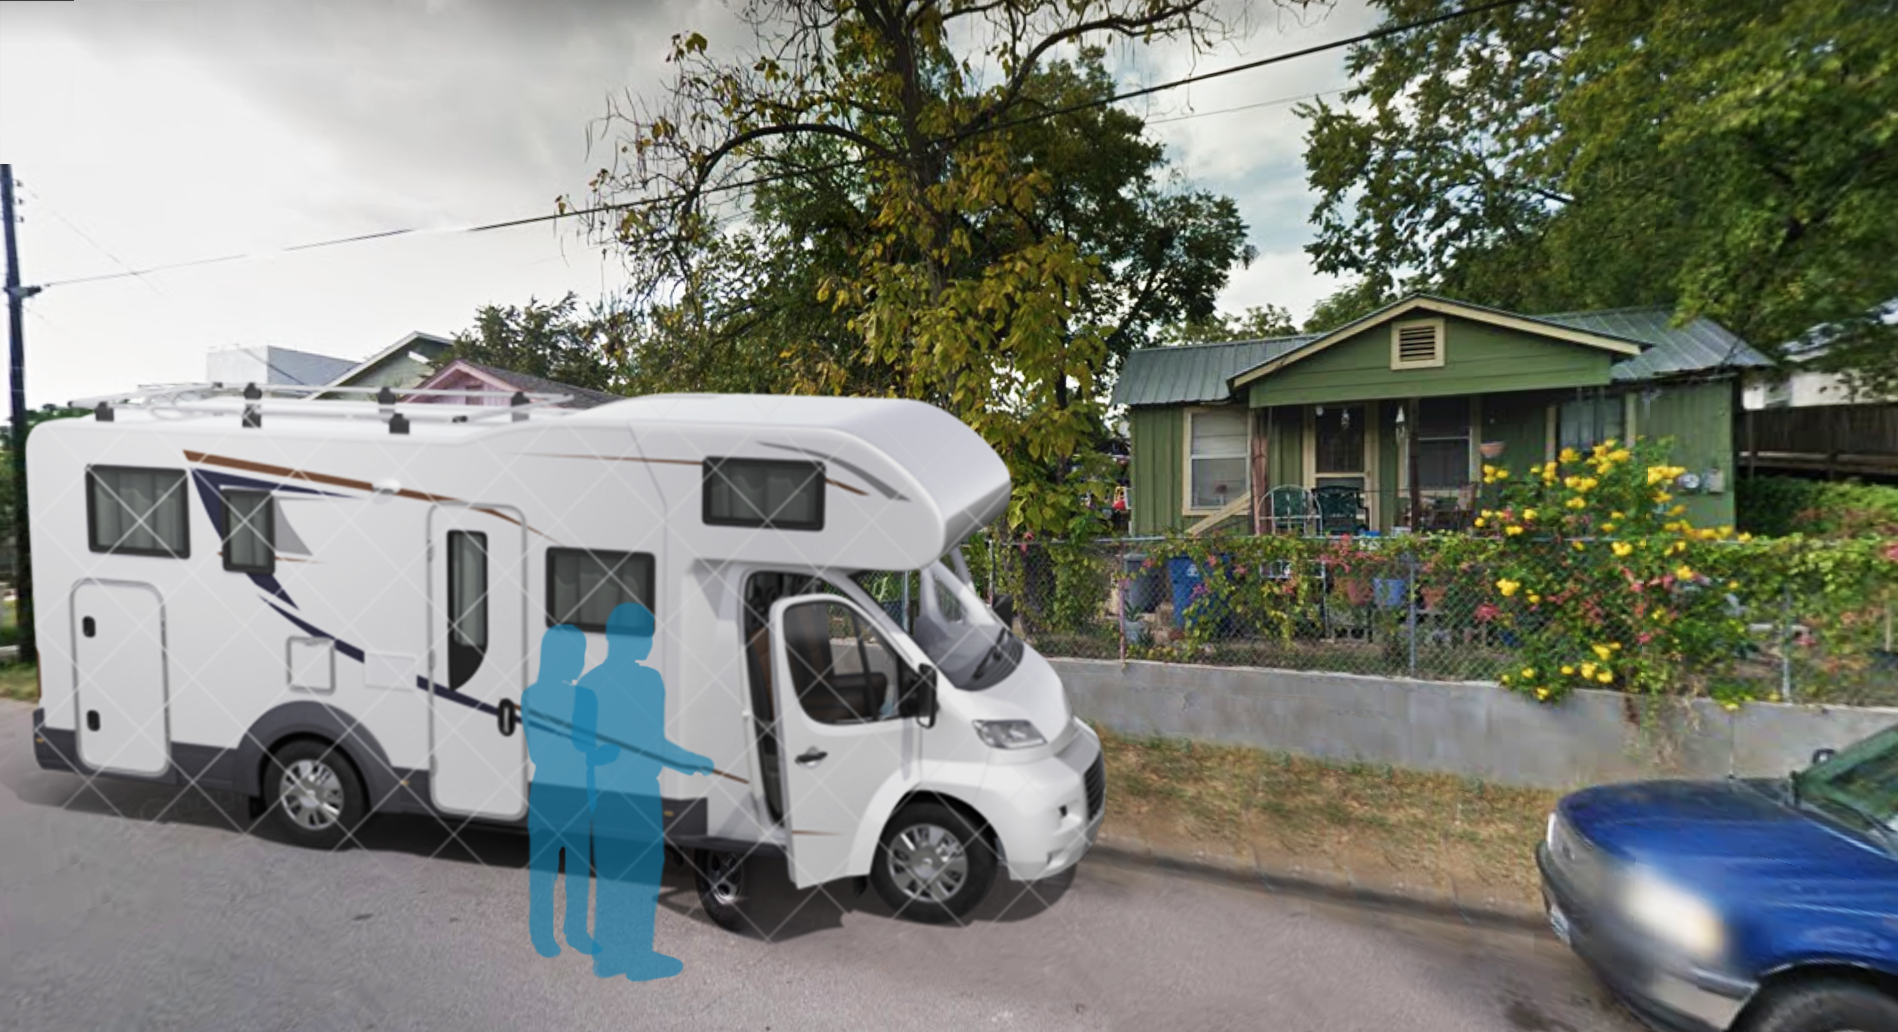 I made a quick photo for context using Google Maps and generic RV 3D model from  Pixel Squid